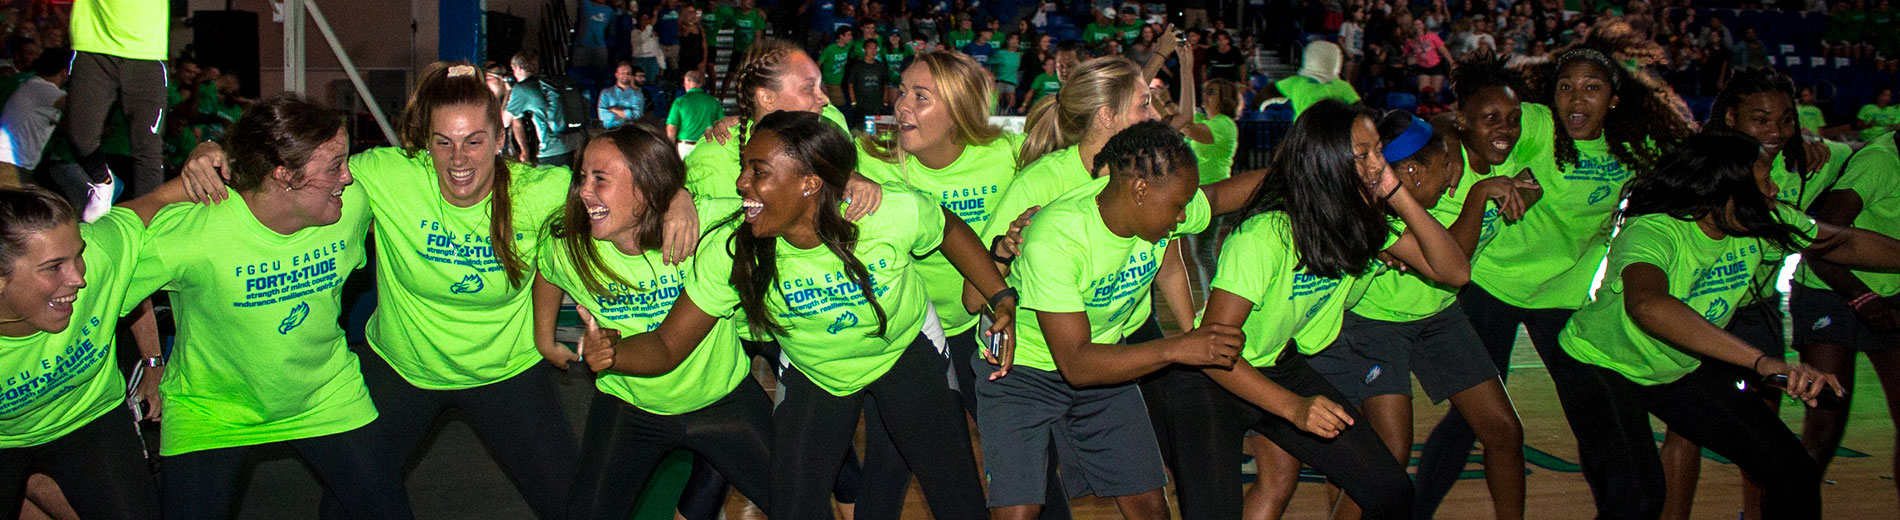 photo shows fgcu athletes celebrating